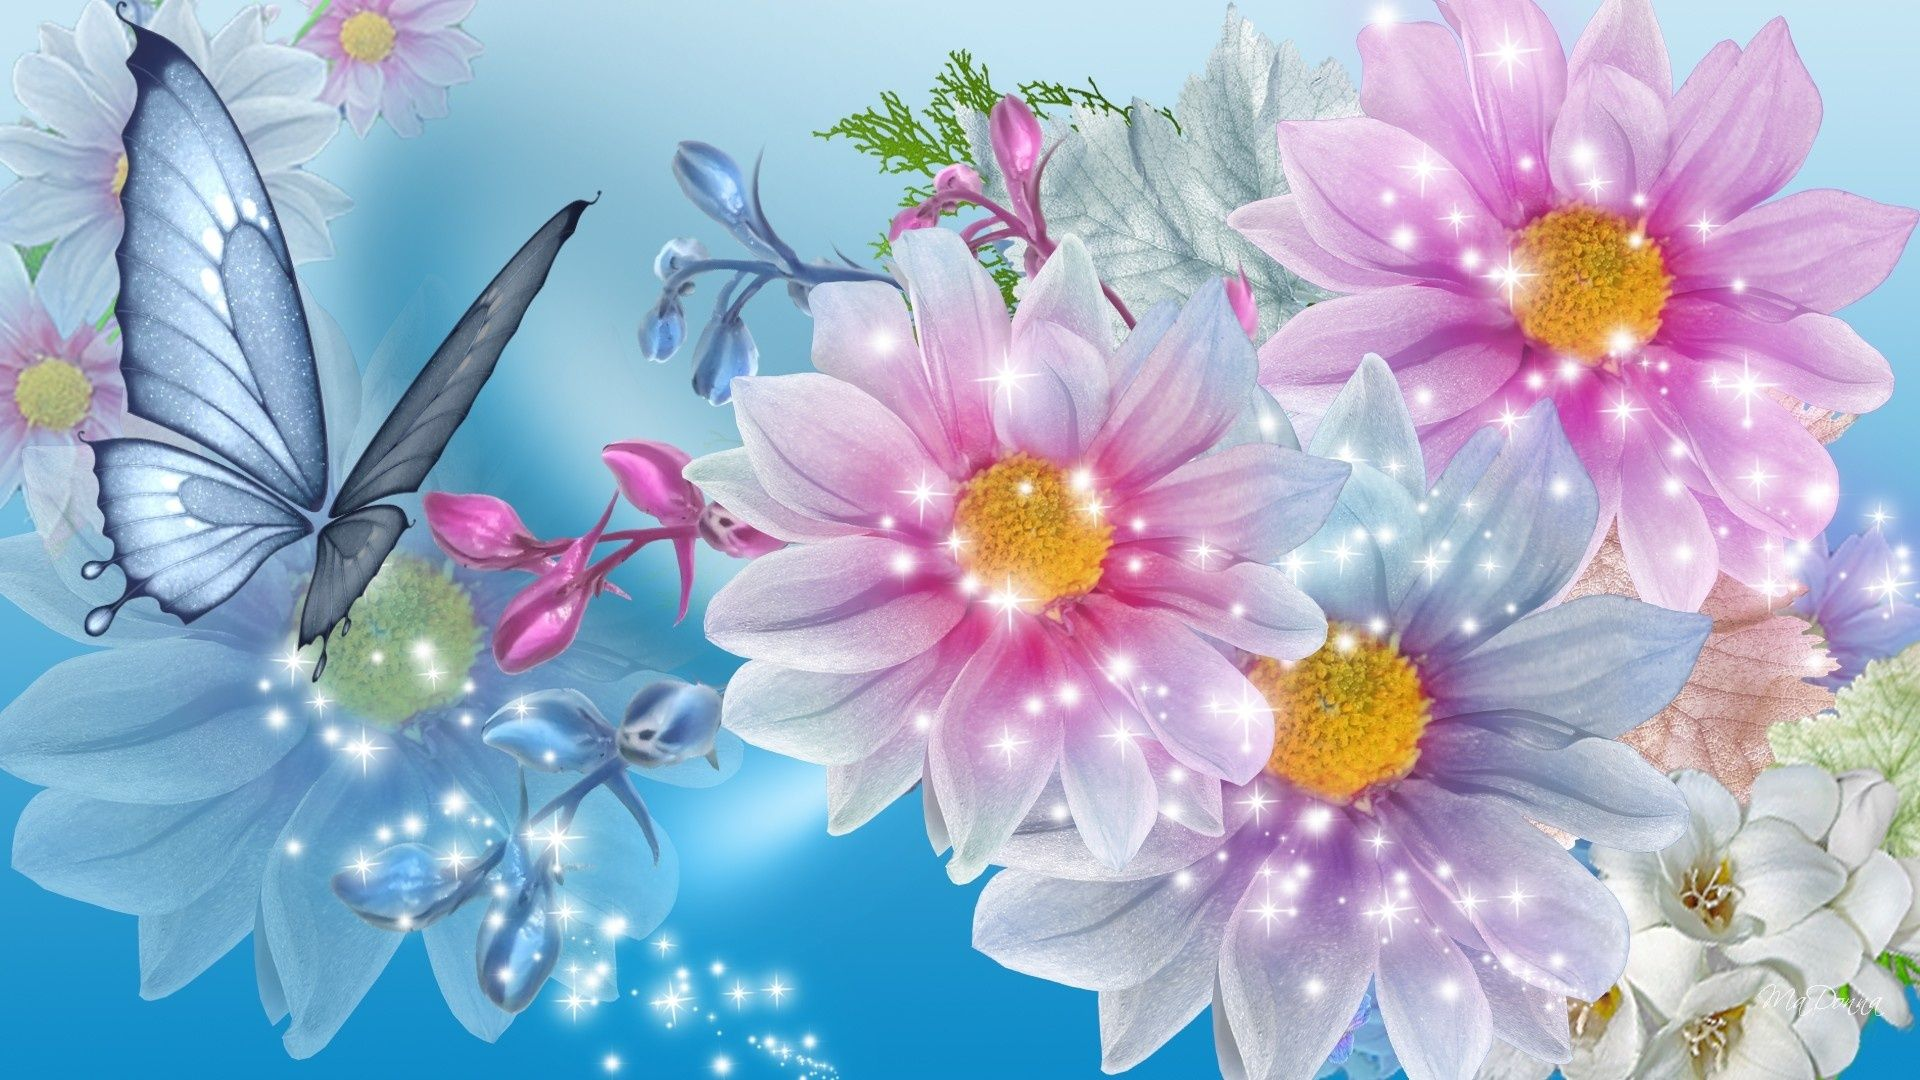 166 Artistic Flower Butterfly Wallpaperbutterfly wallpaper 1920x1080